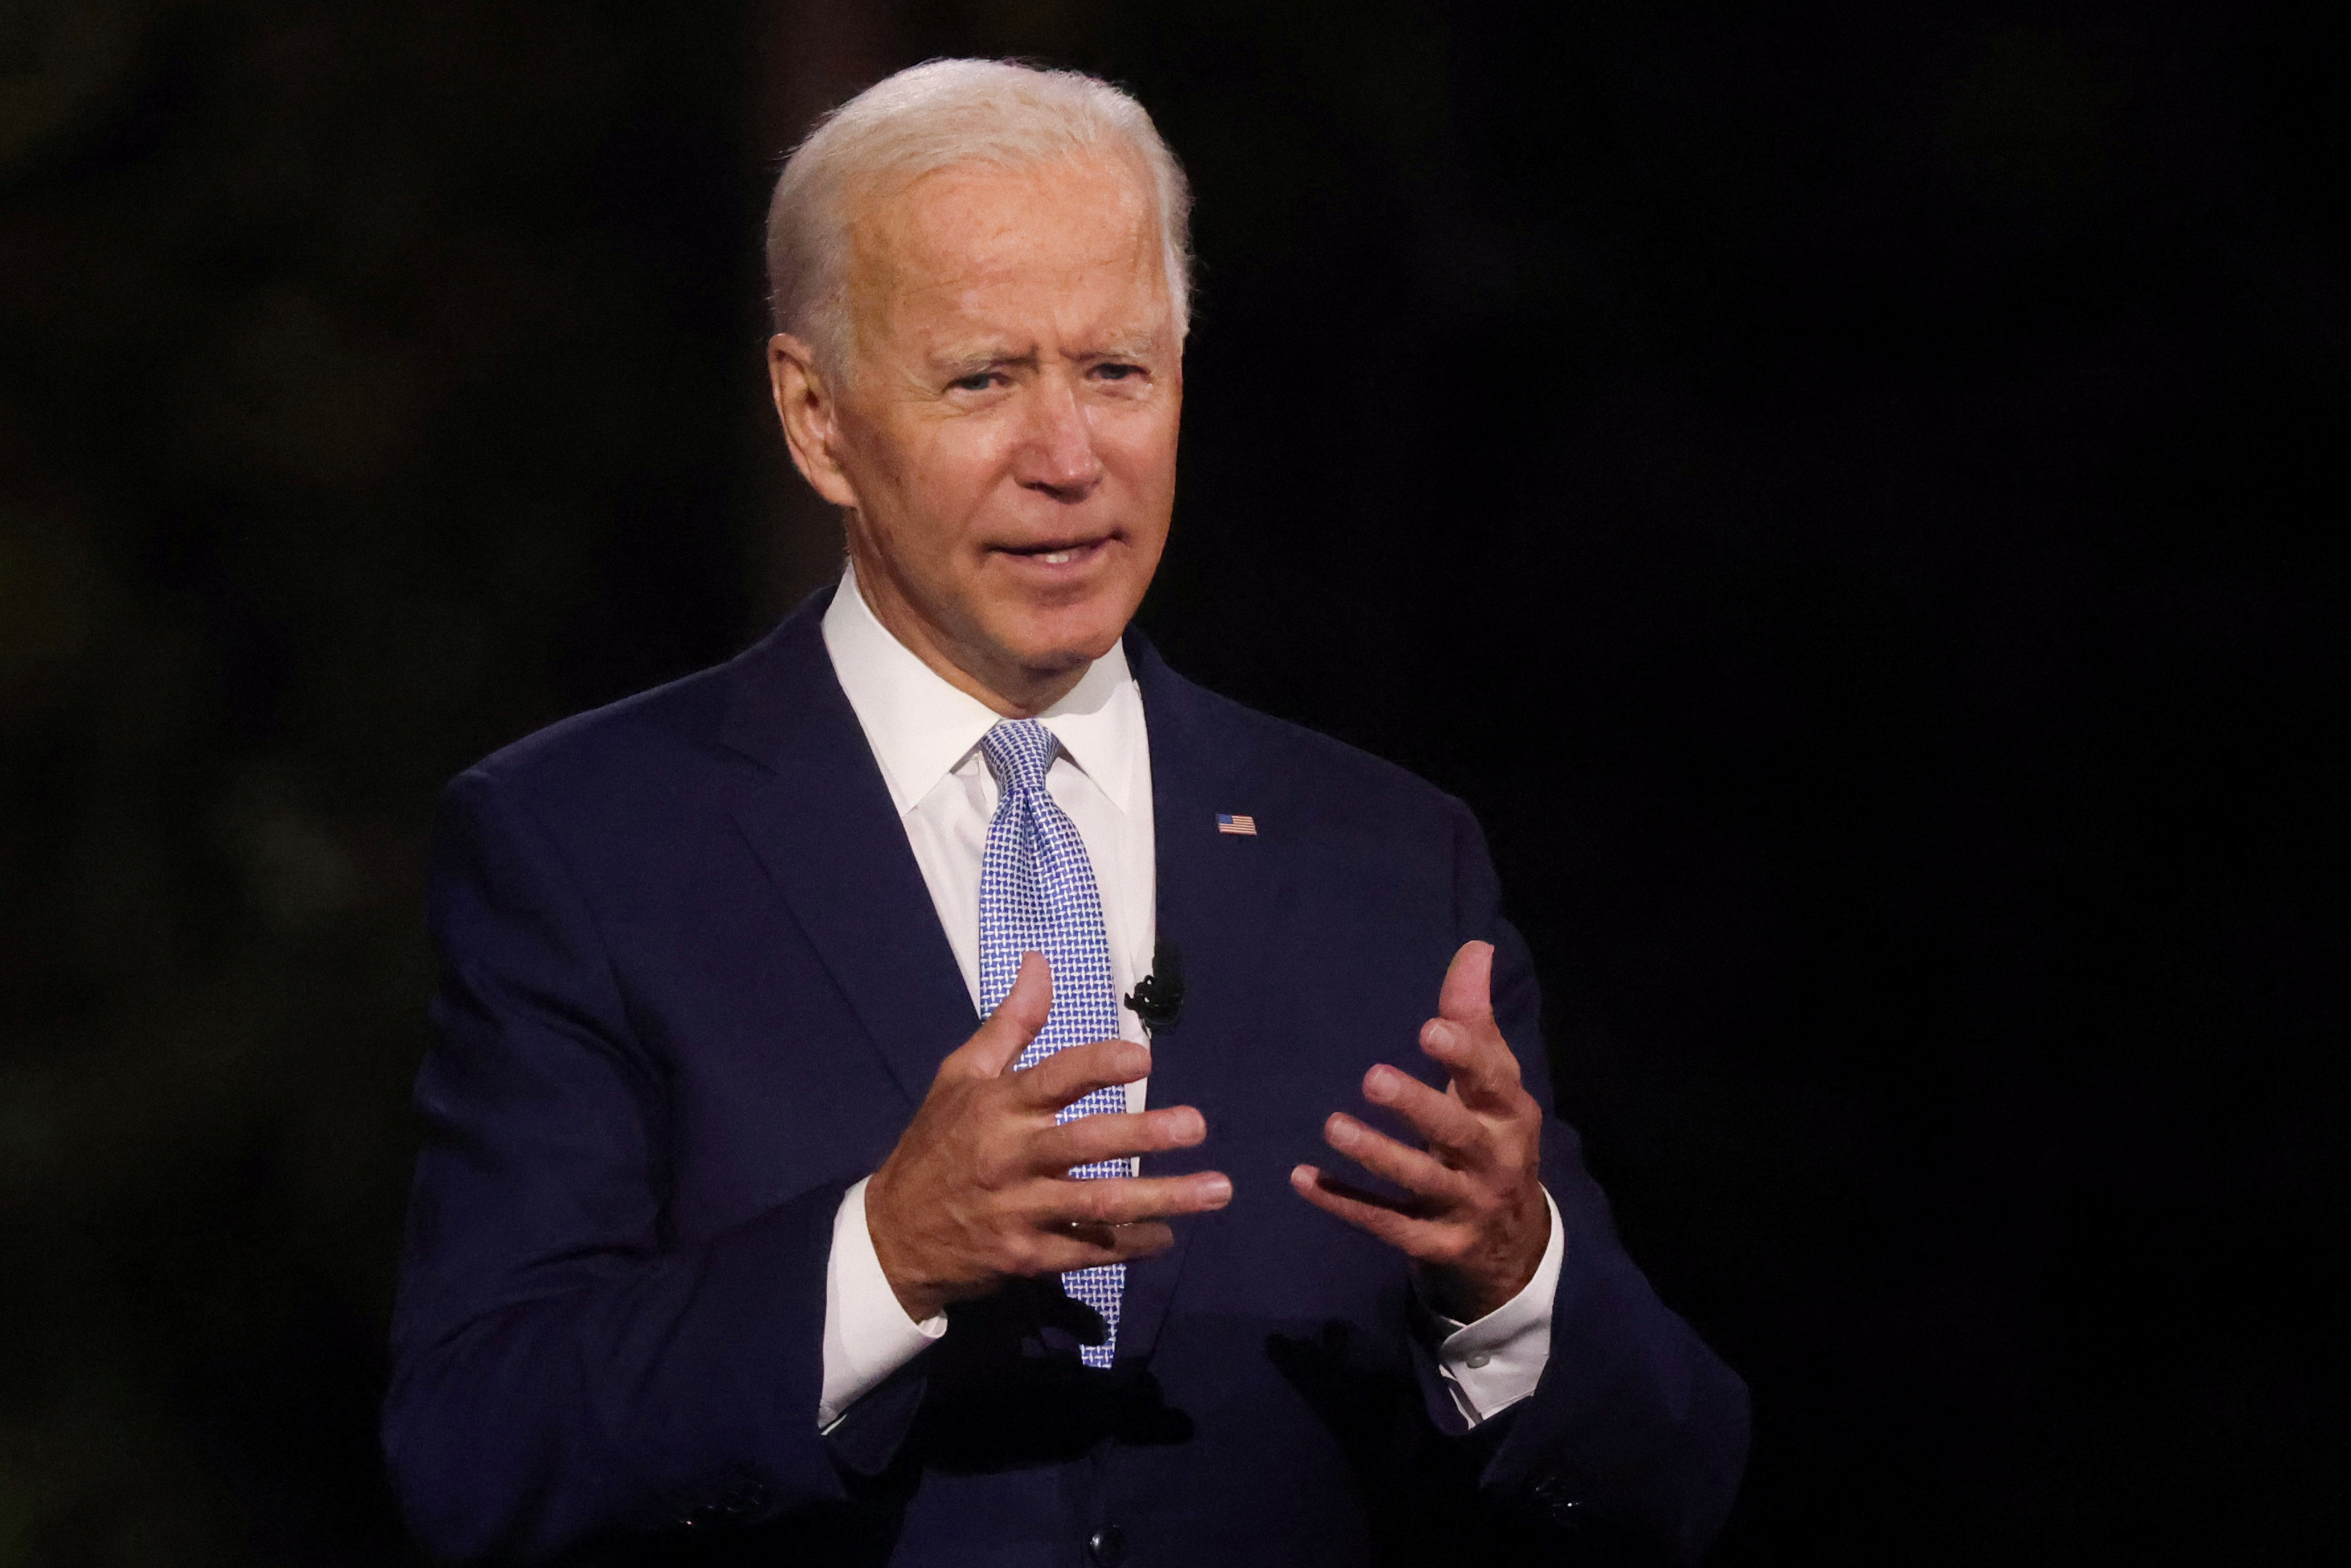 Biden news – live: Ex-VP swipes at Ivy League snobbery